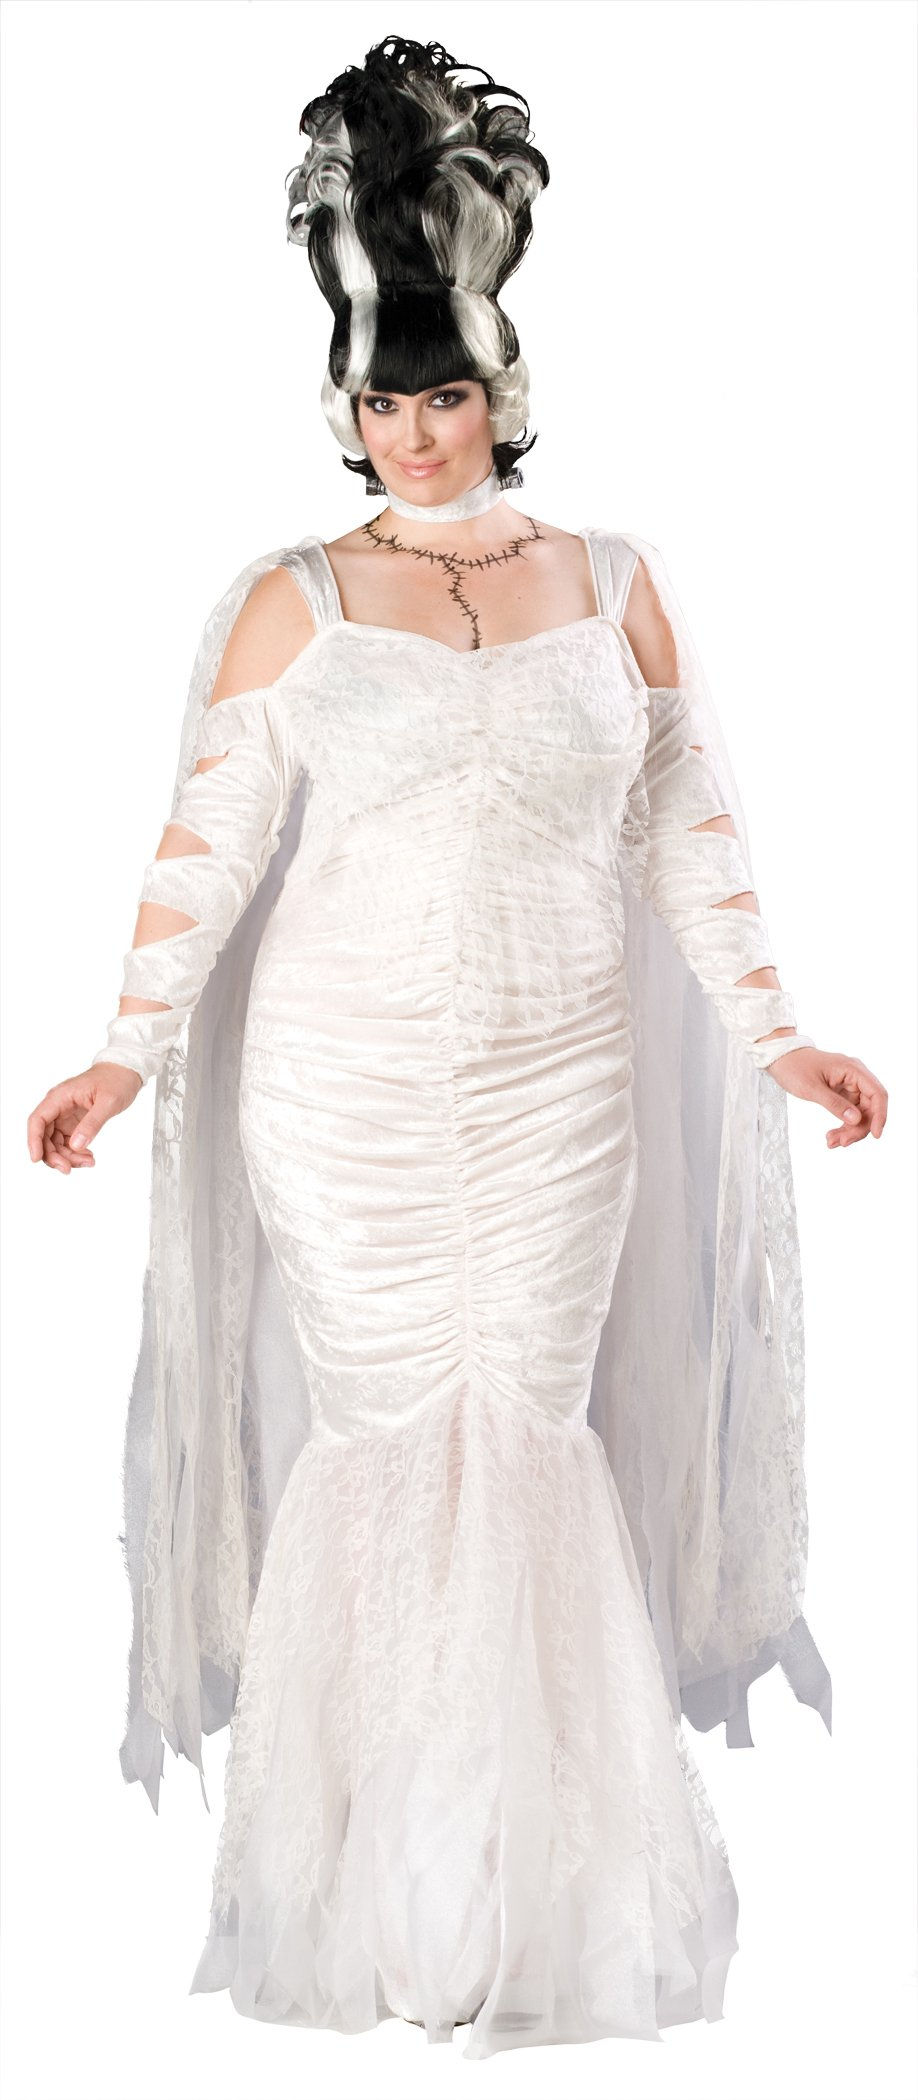 Bride Of Frankenstein Monster Elite Adult Plus Costume